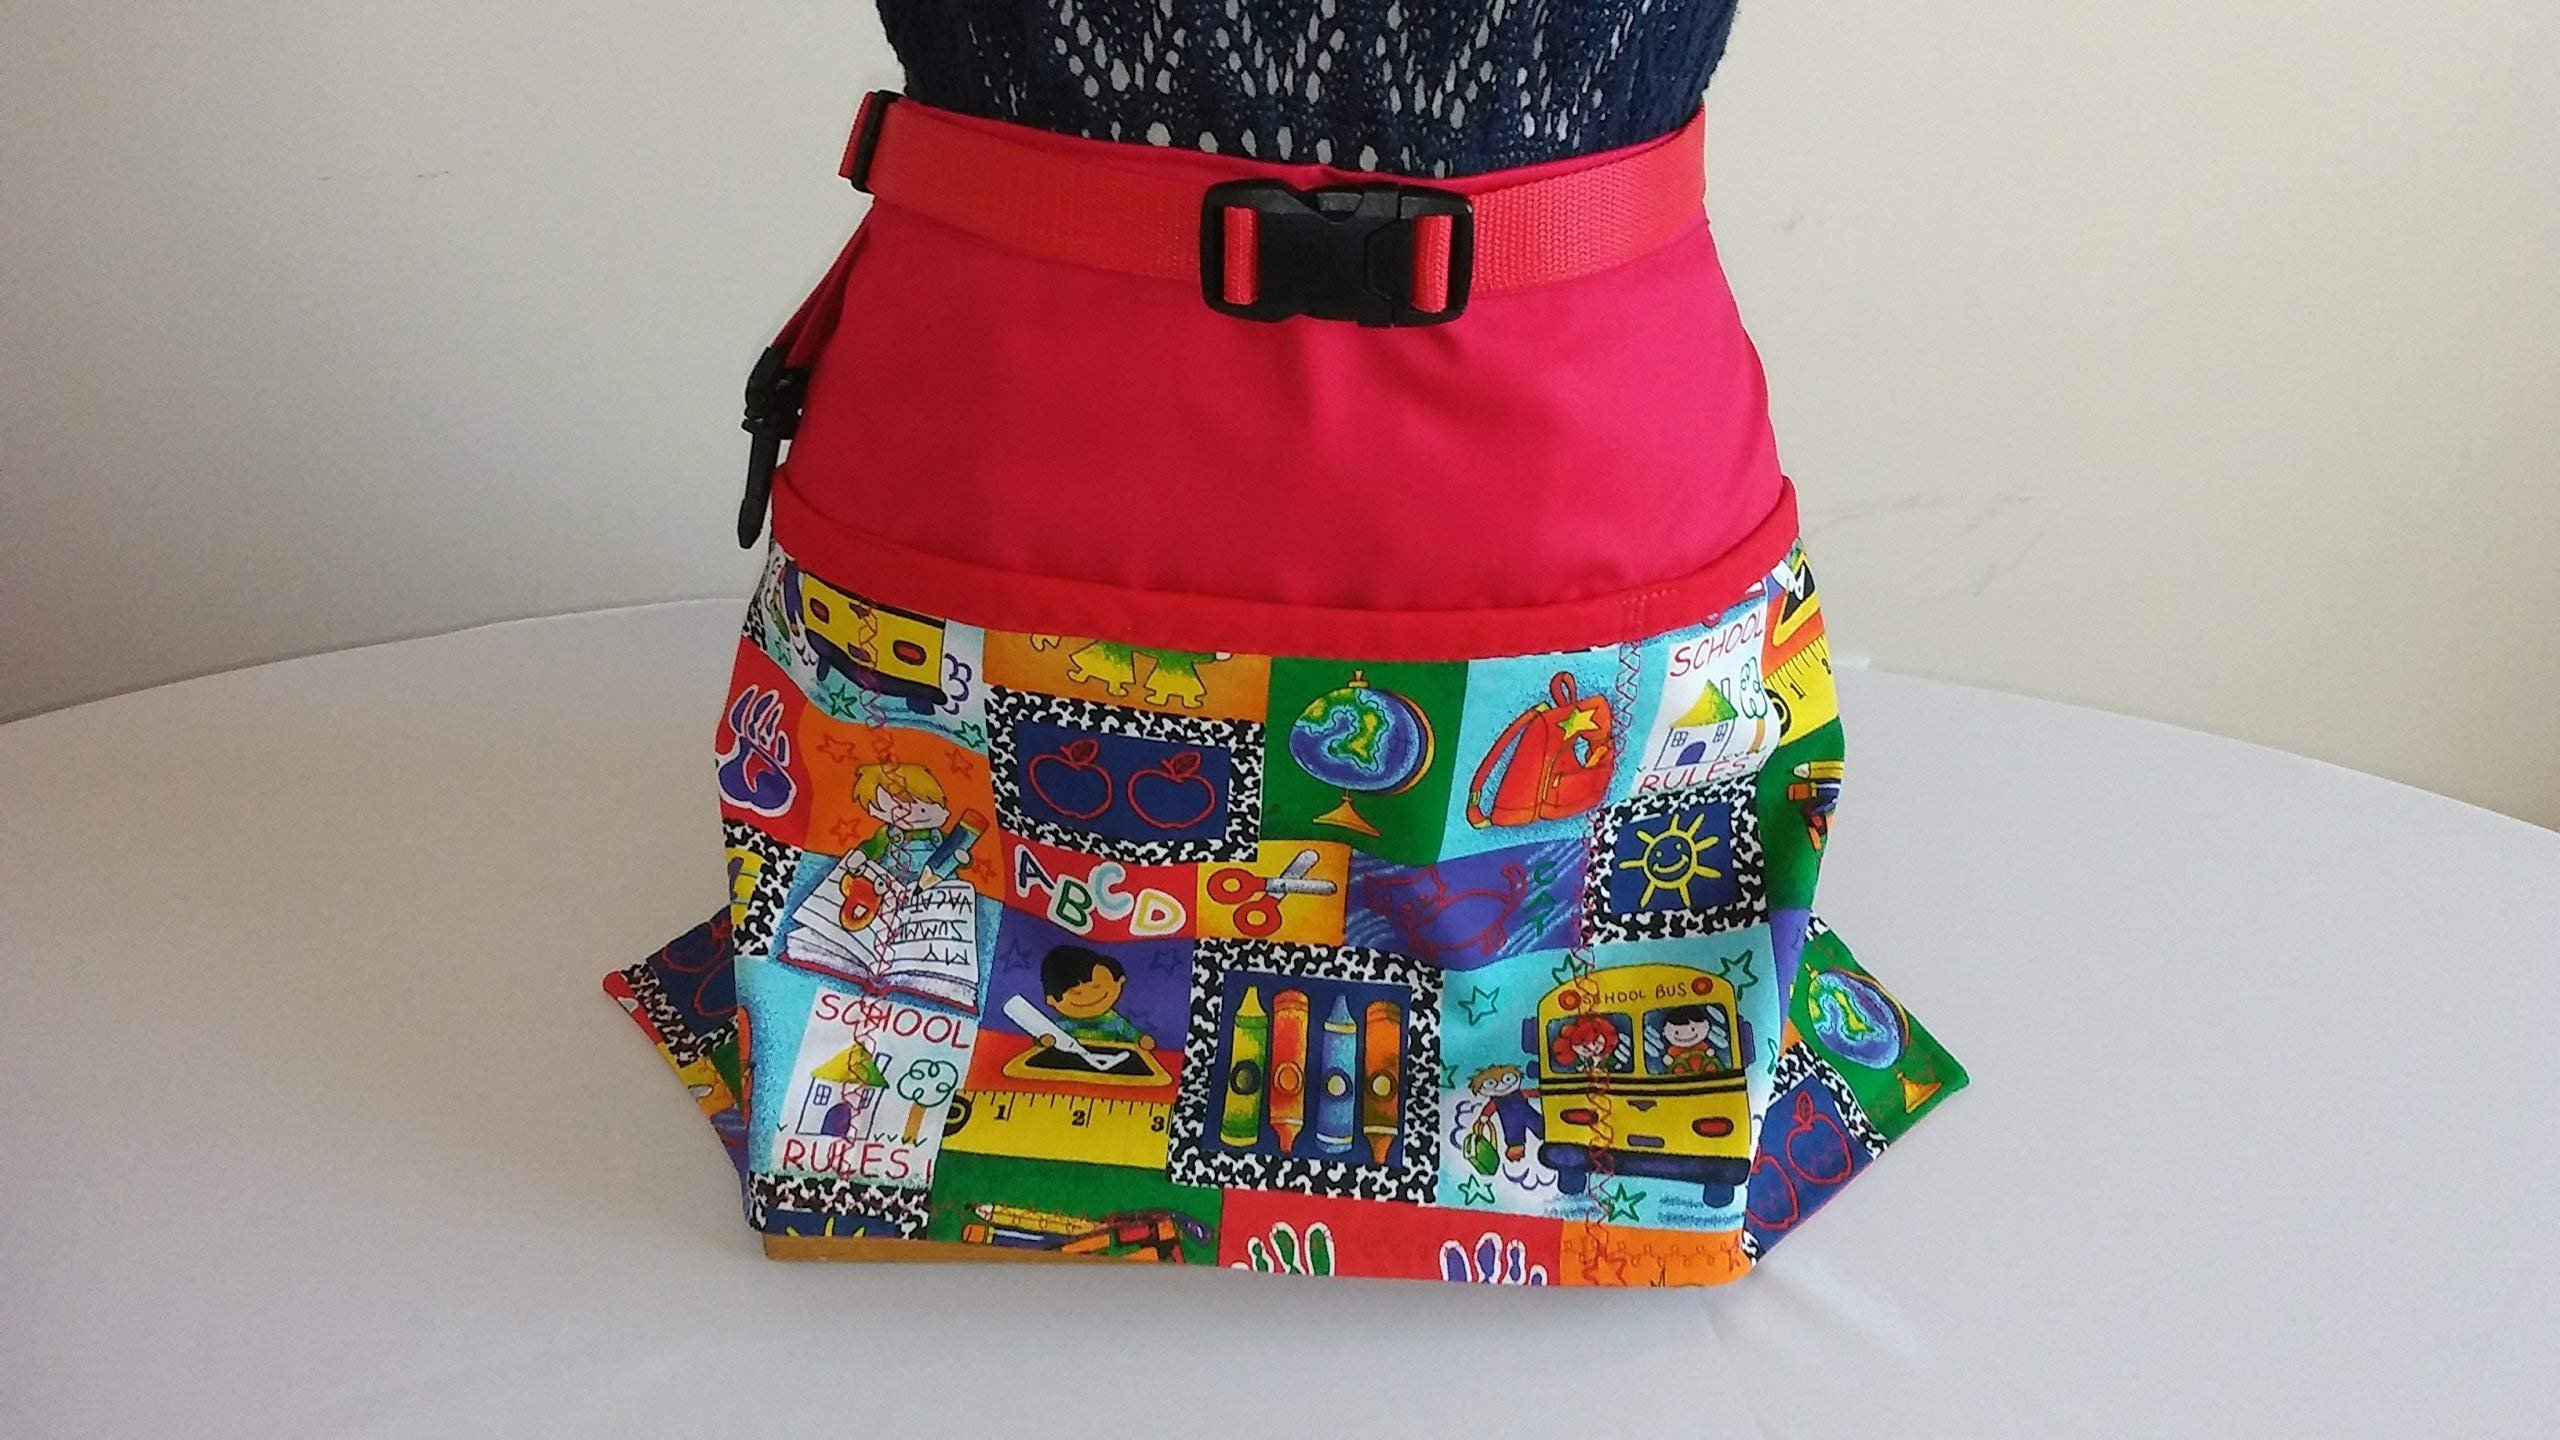 ADJUSTABLE NO TIE APRON - School Pattern / 3 Lined Pockets Waist Apron with attached key holder for keys and badge/One size fits most/The Perfect Teacher's Gift/Day Care